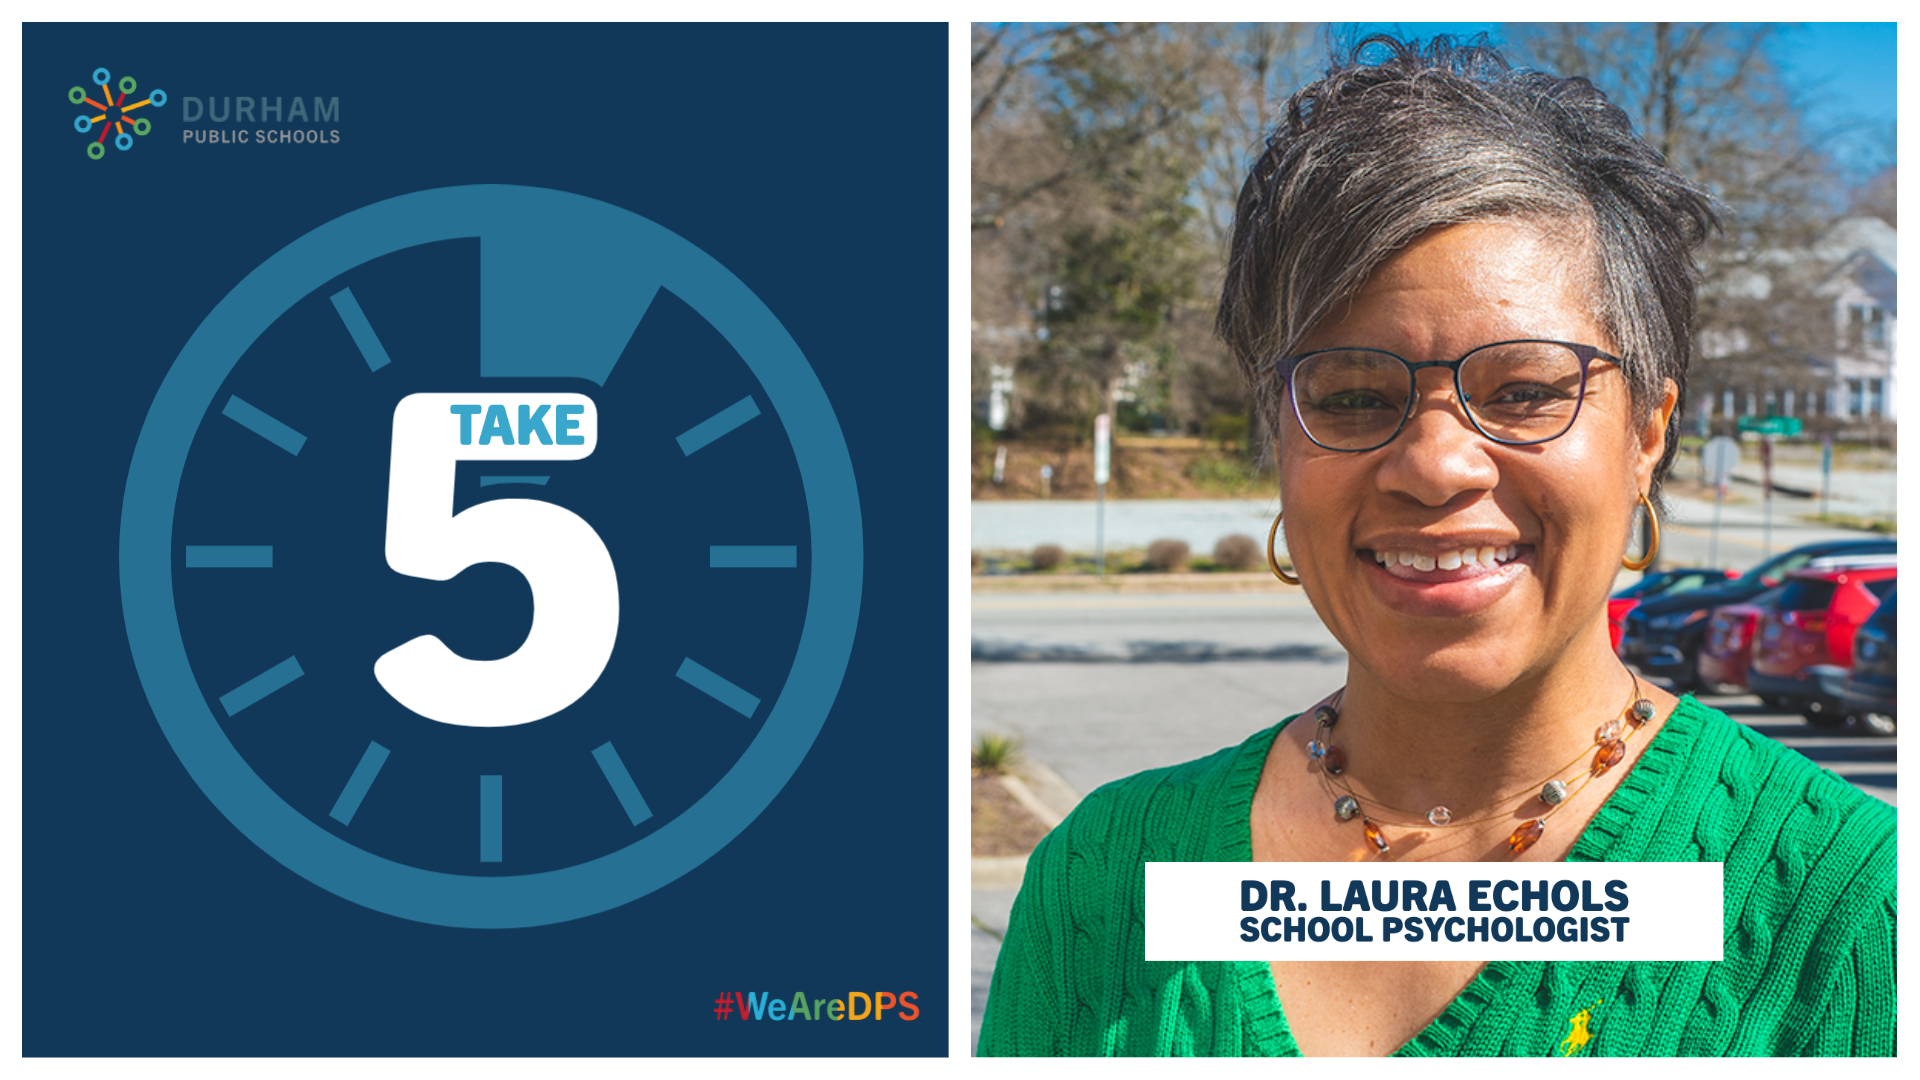 TAKE 5 with EC | Dr. Laura Echols, School Psychologist